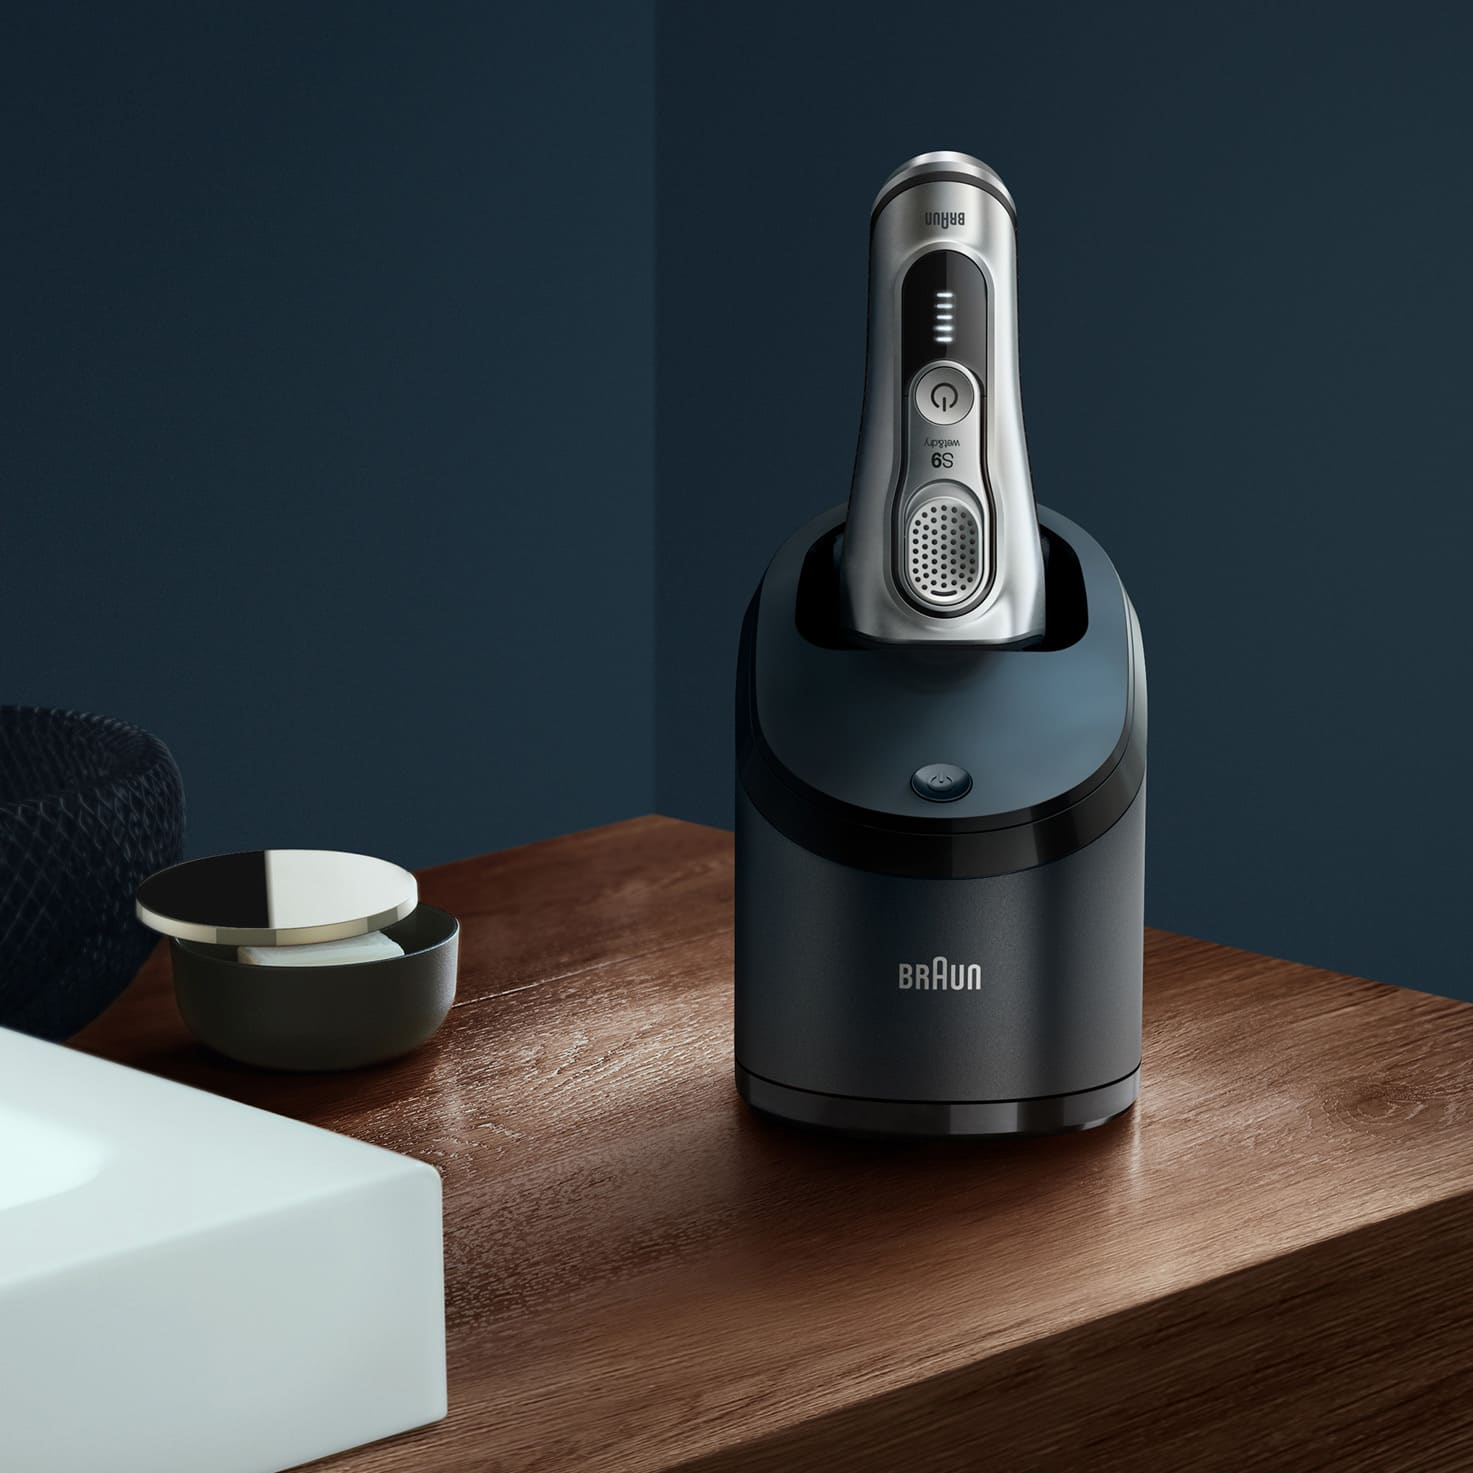 Series 9 9390cc shaver in Clean & Charge station